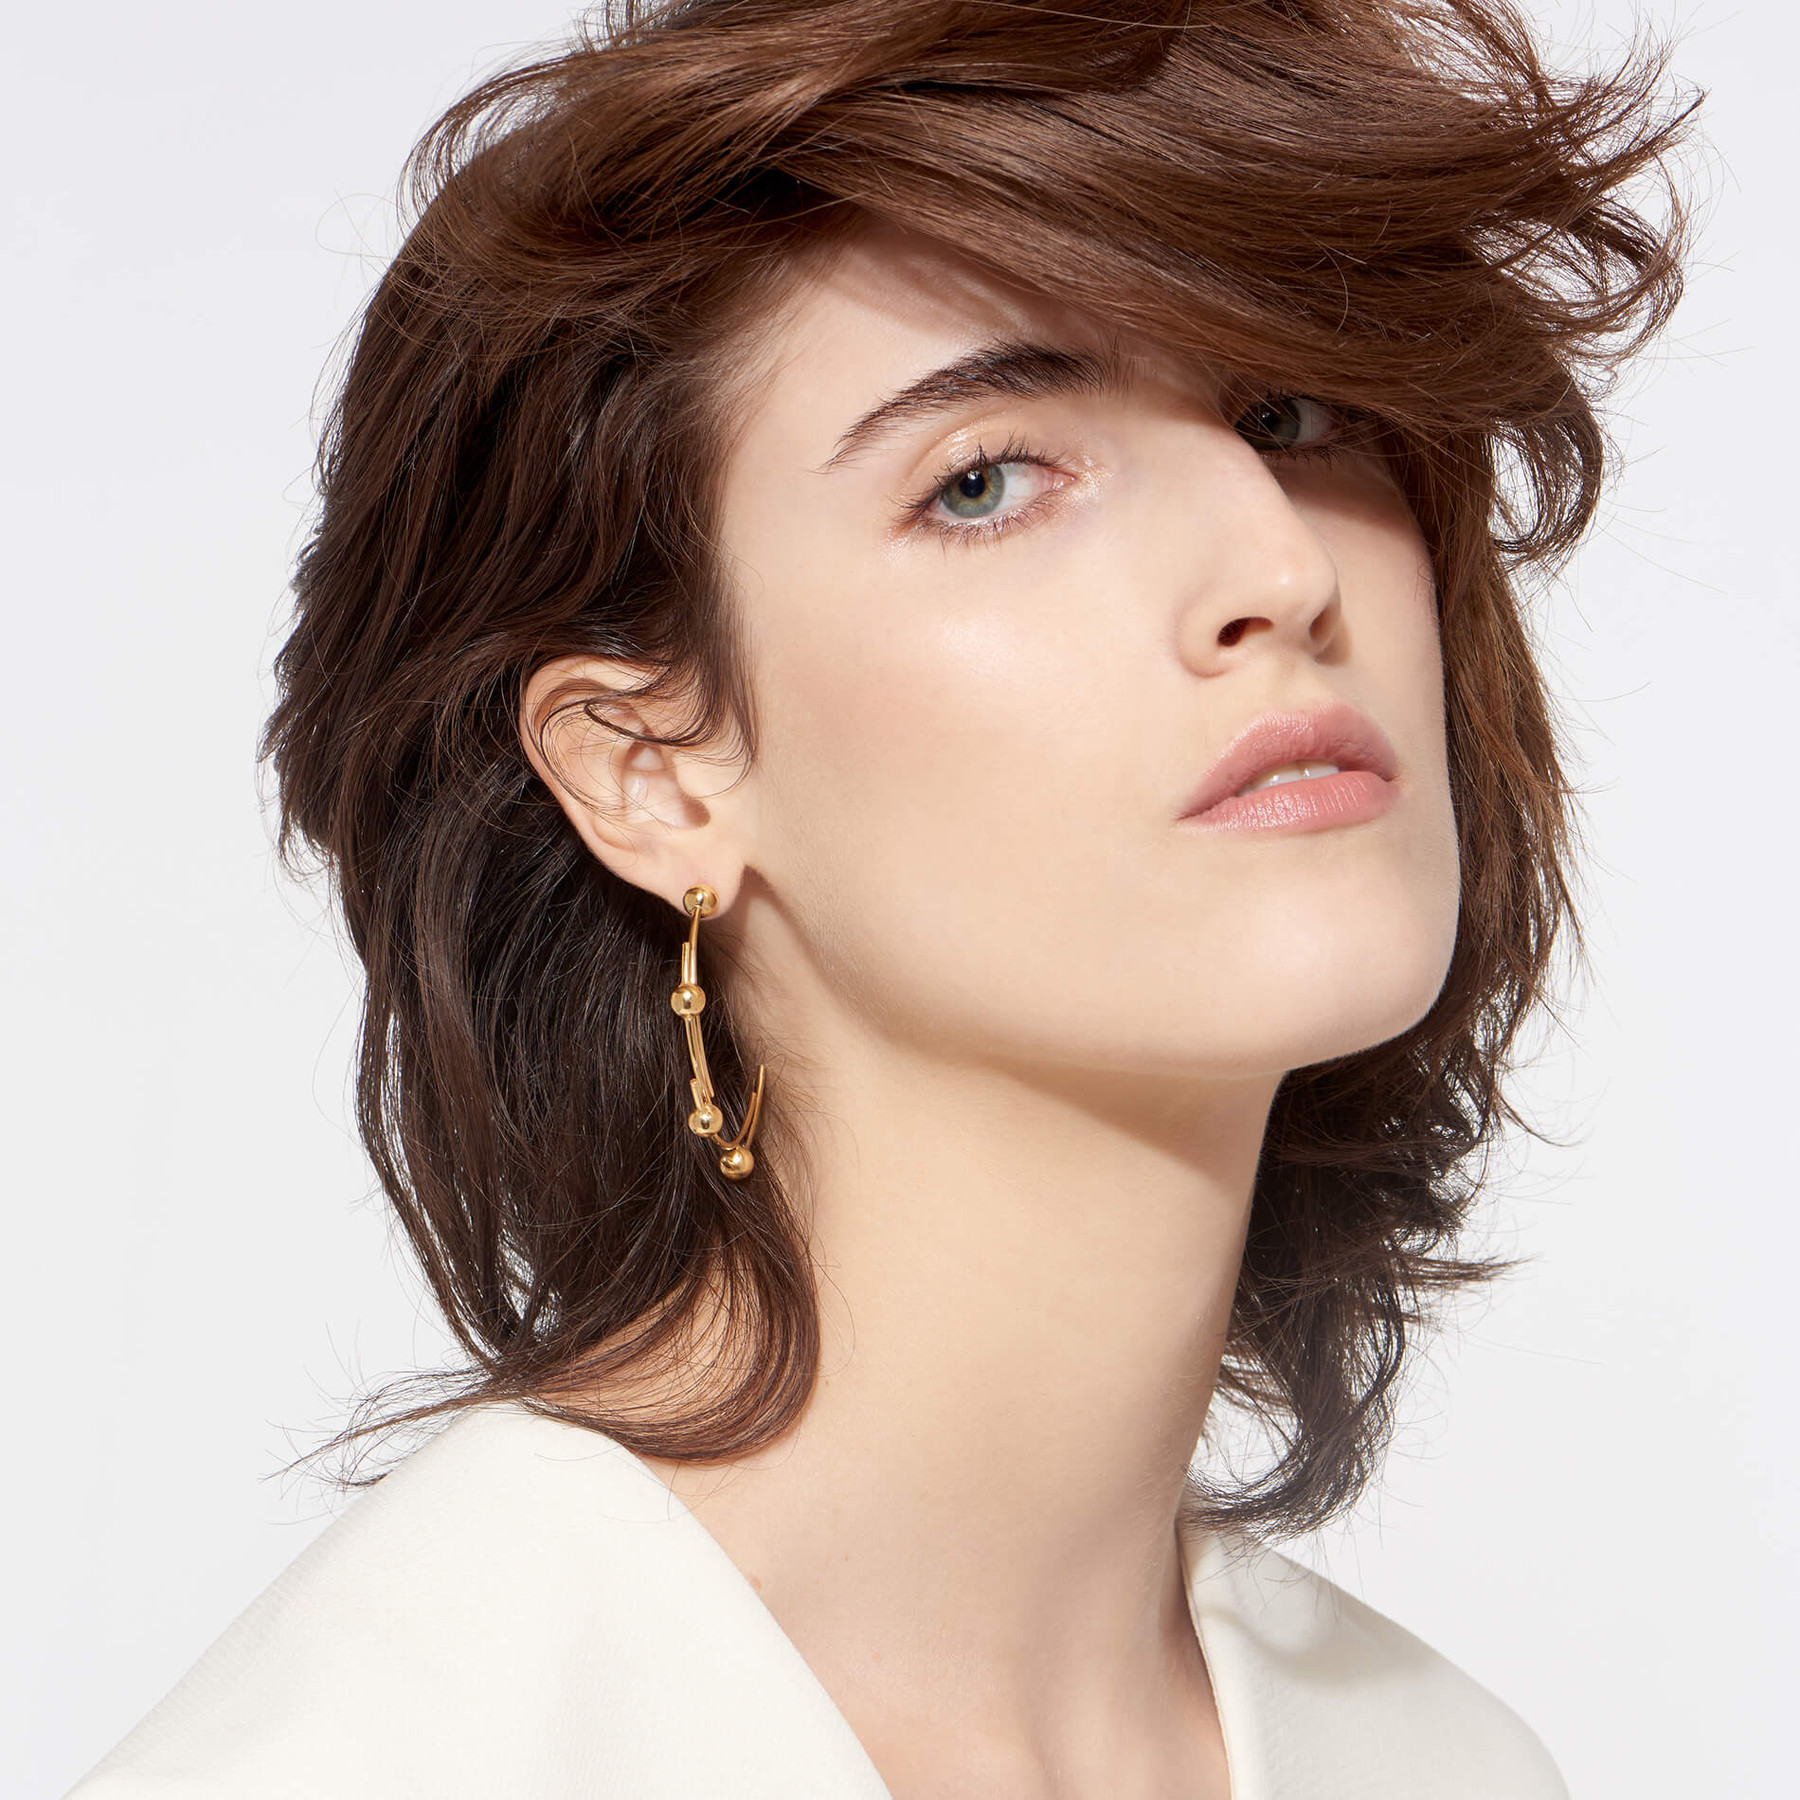 glowing 22 karat gold earrings in contemporary design with multiple spheres displayed on attractive model